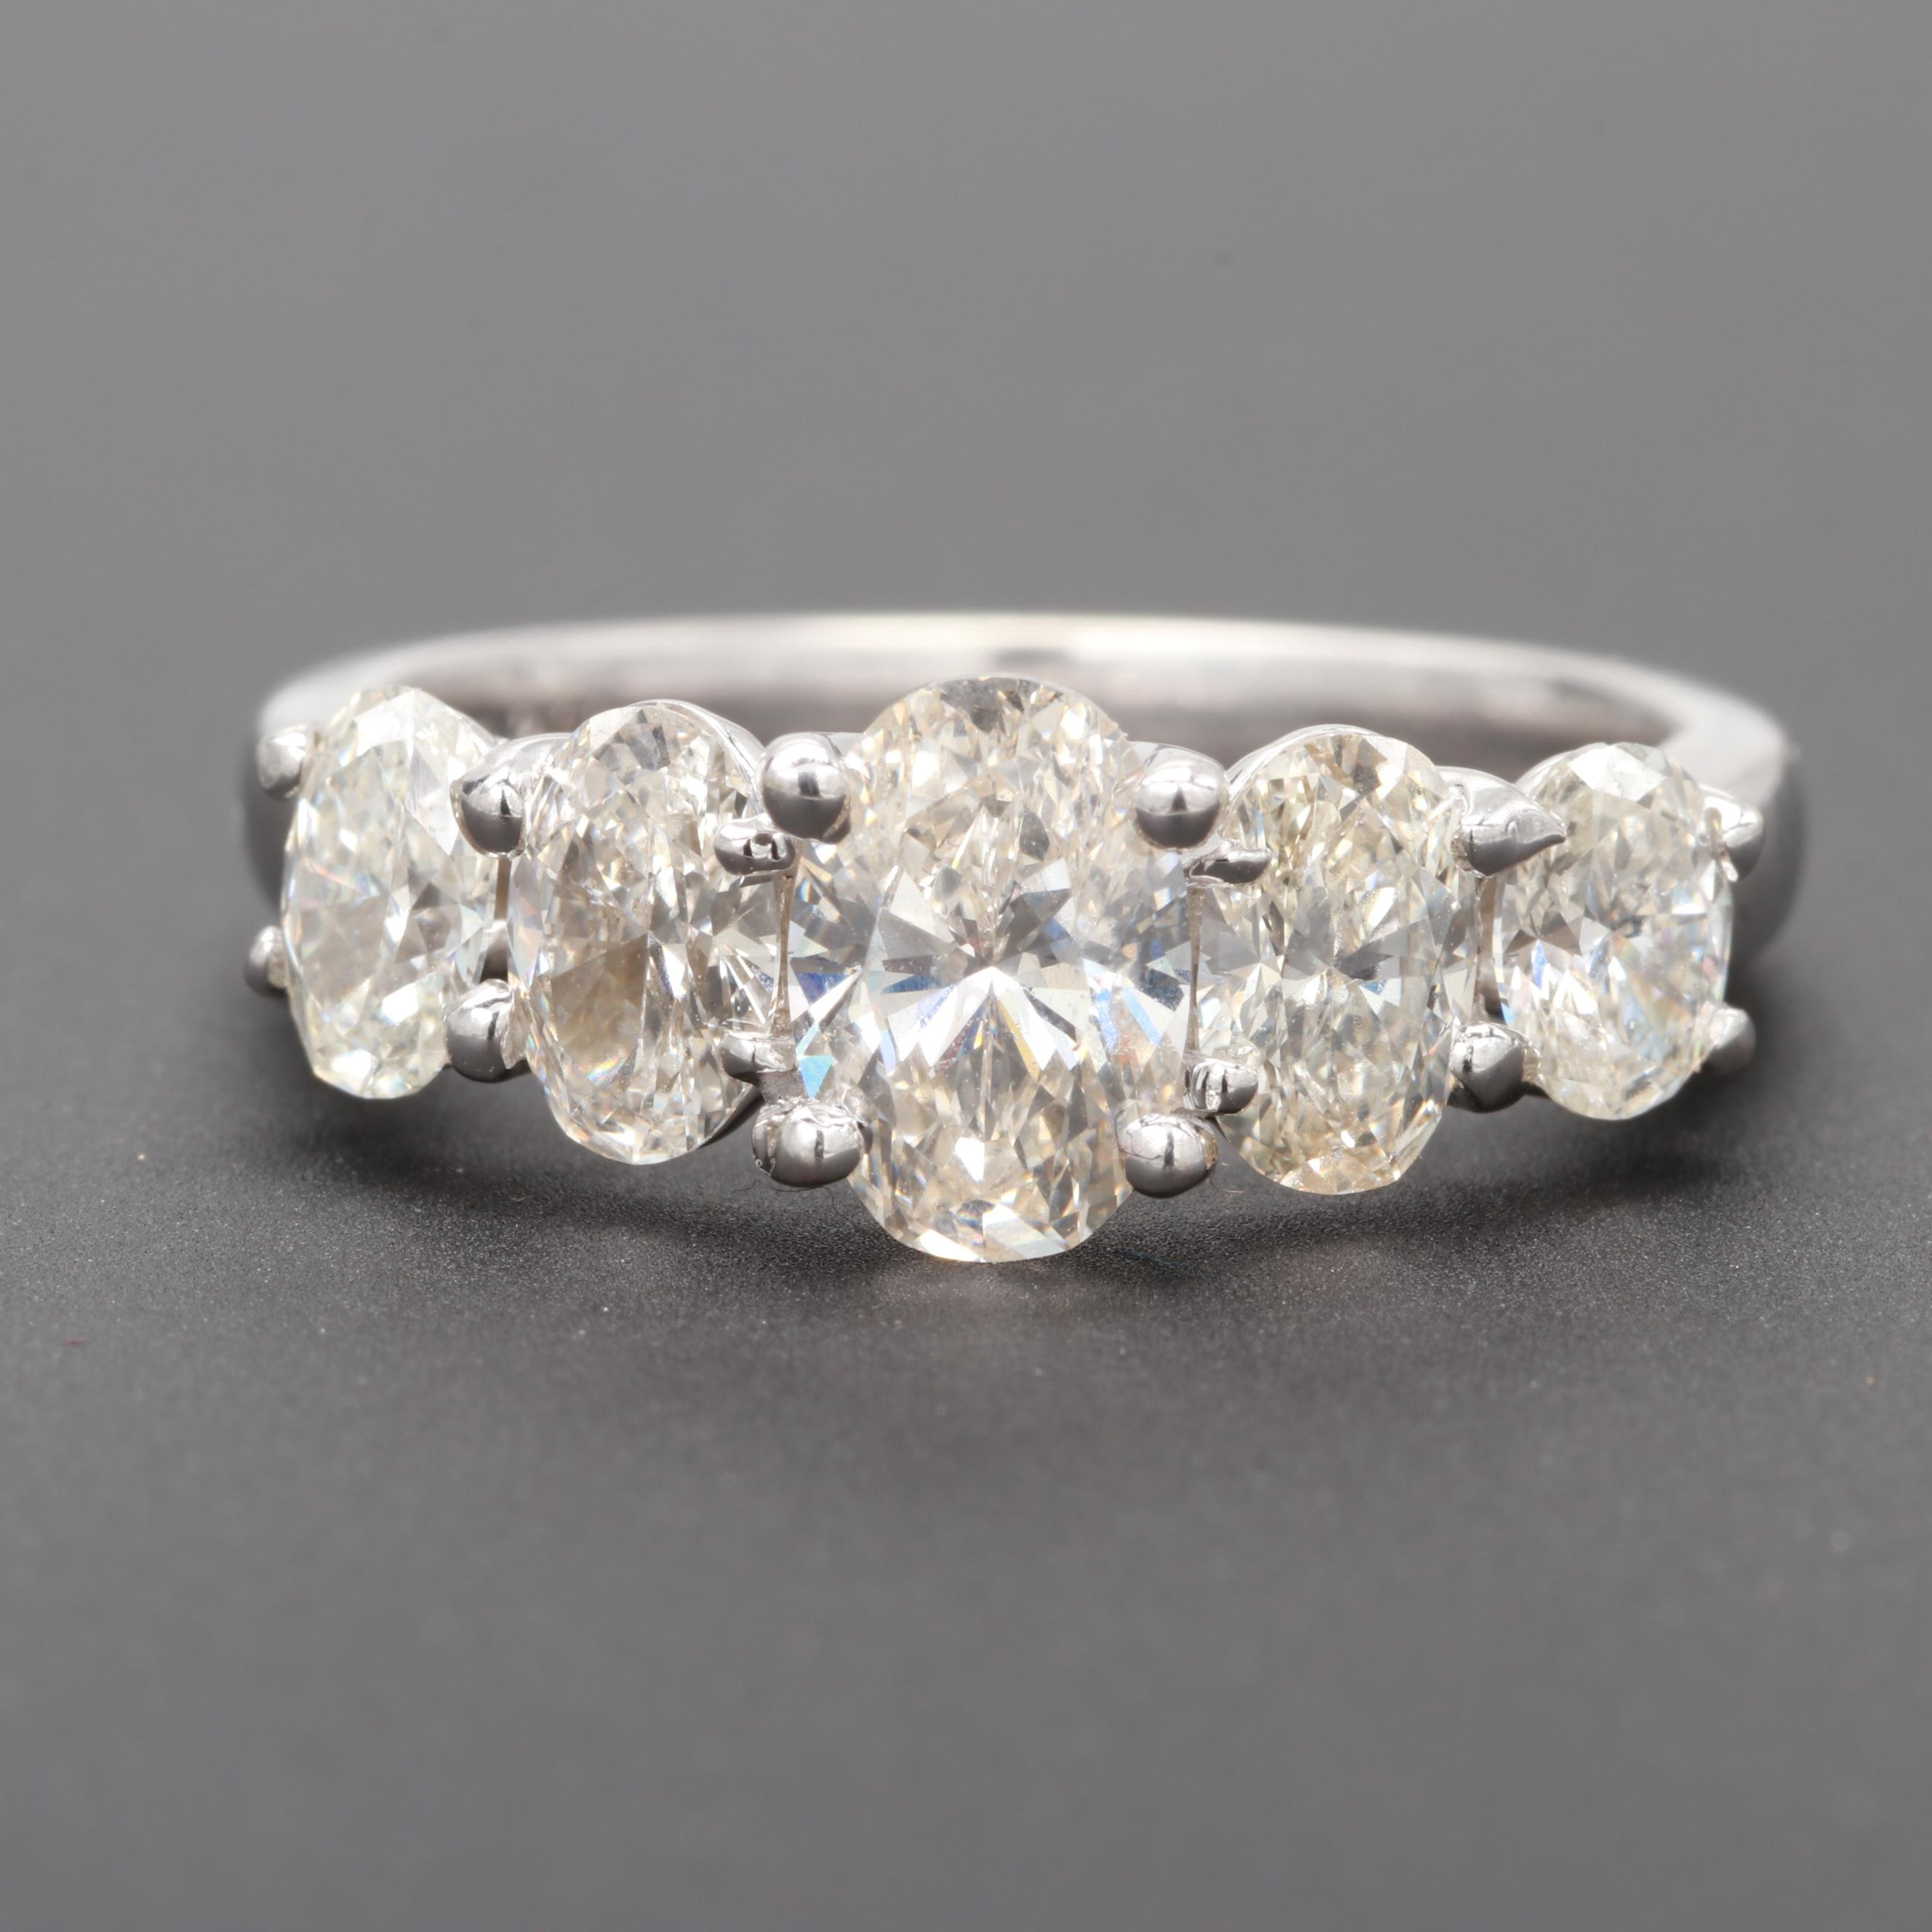 18K White Gold 2.23 CTW Diamond Ring